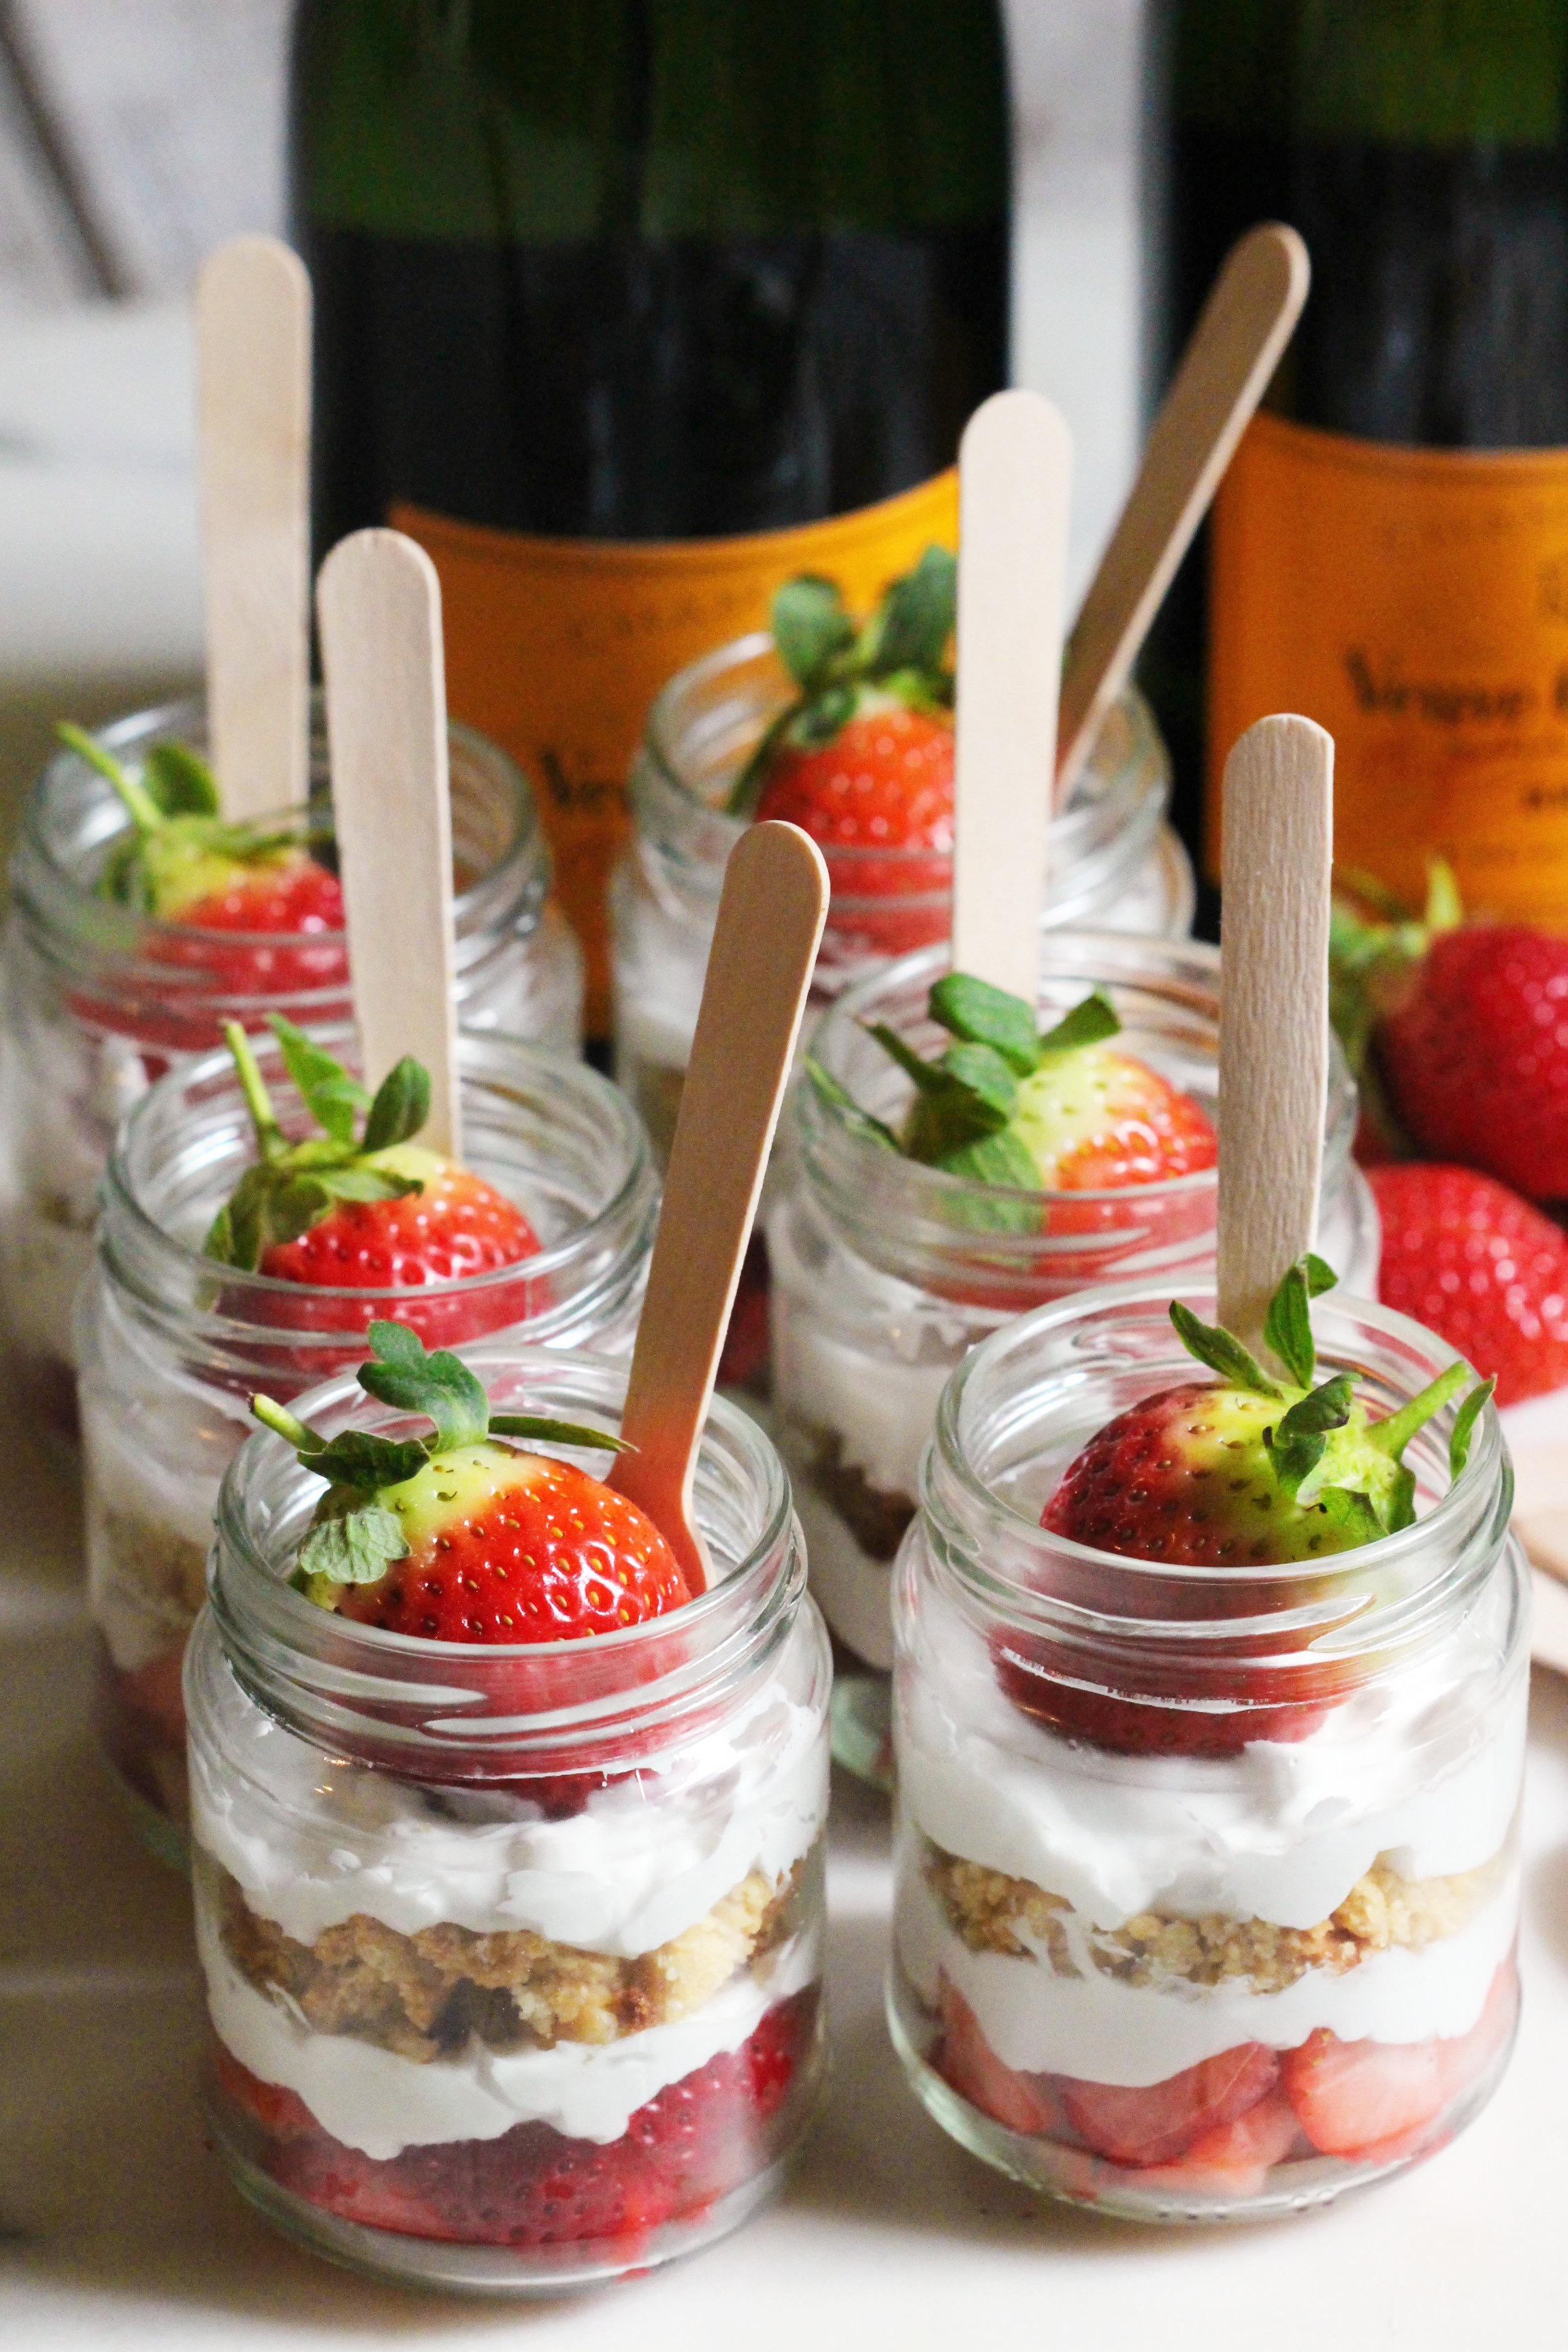 Strawberry Shortcake Pots 2